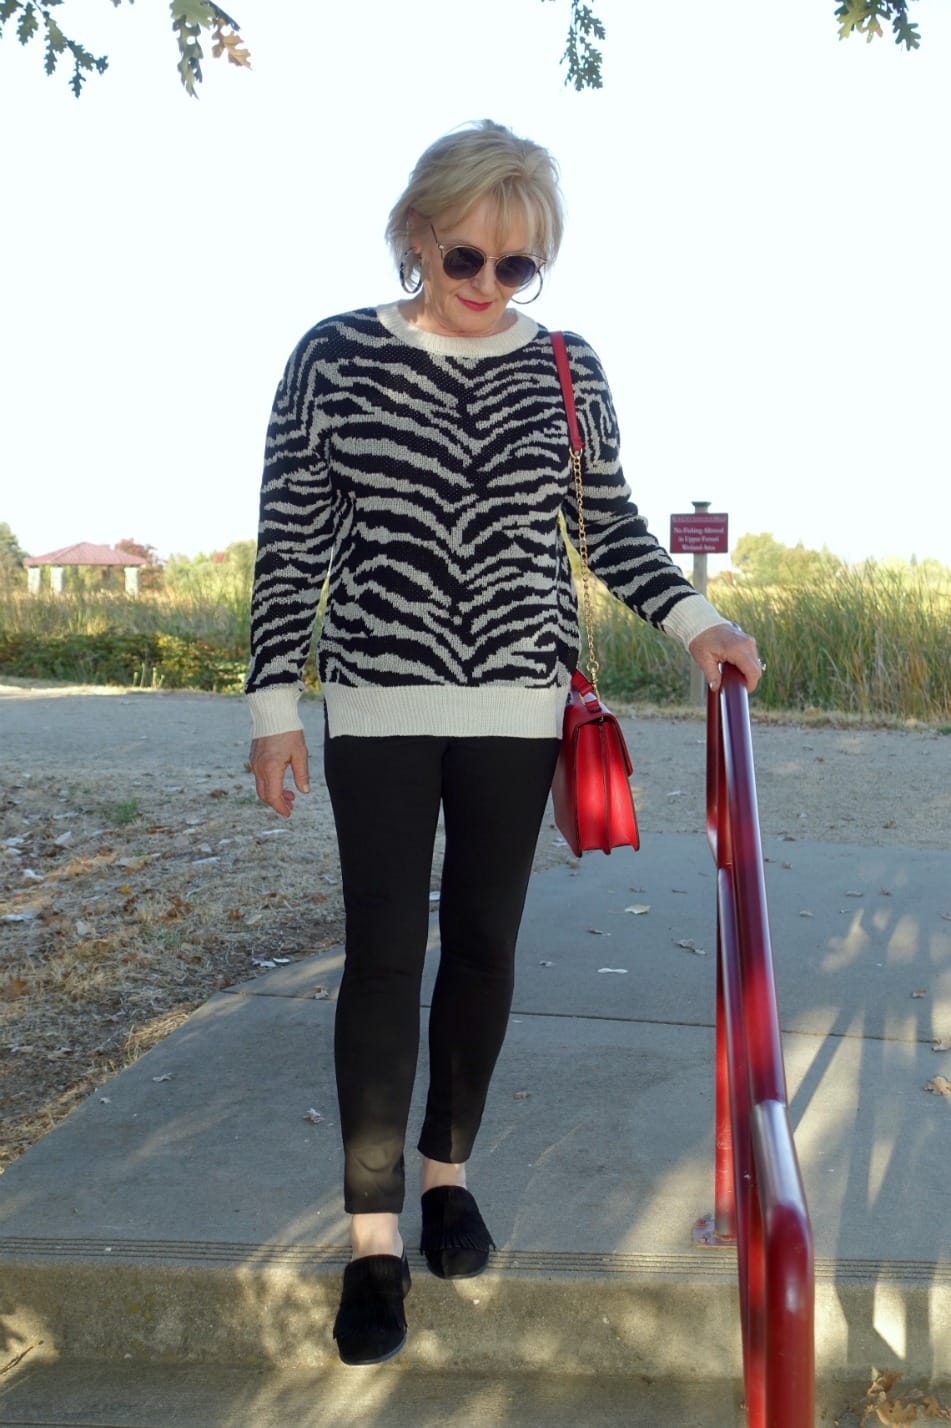 Jennifer Connolly of A Well Styled Life wearing zebra sweater with black leggings